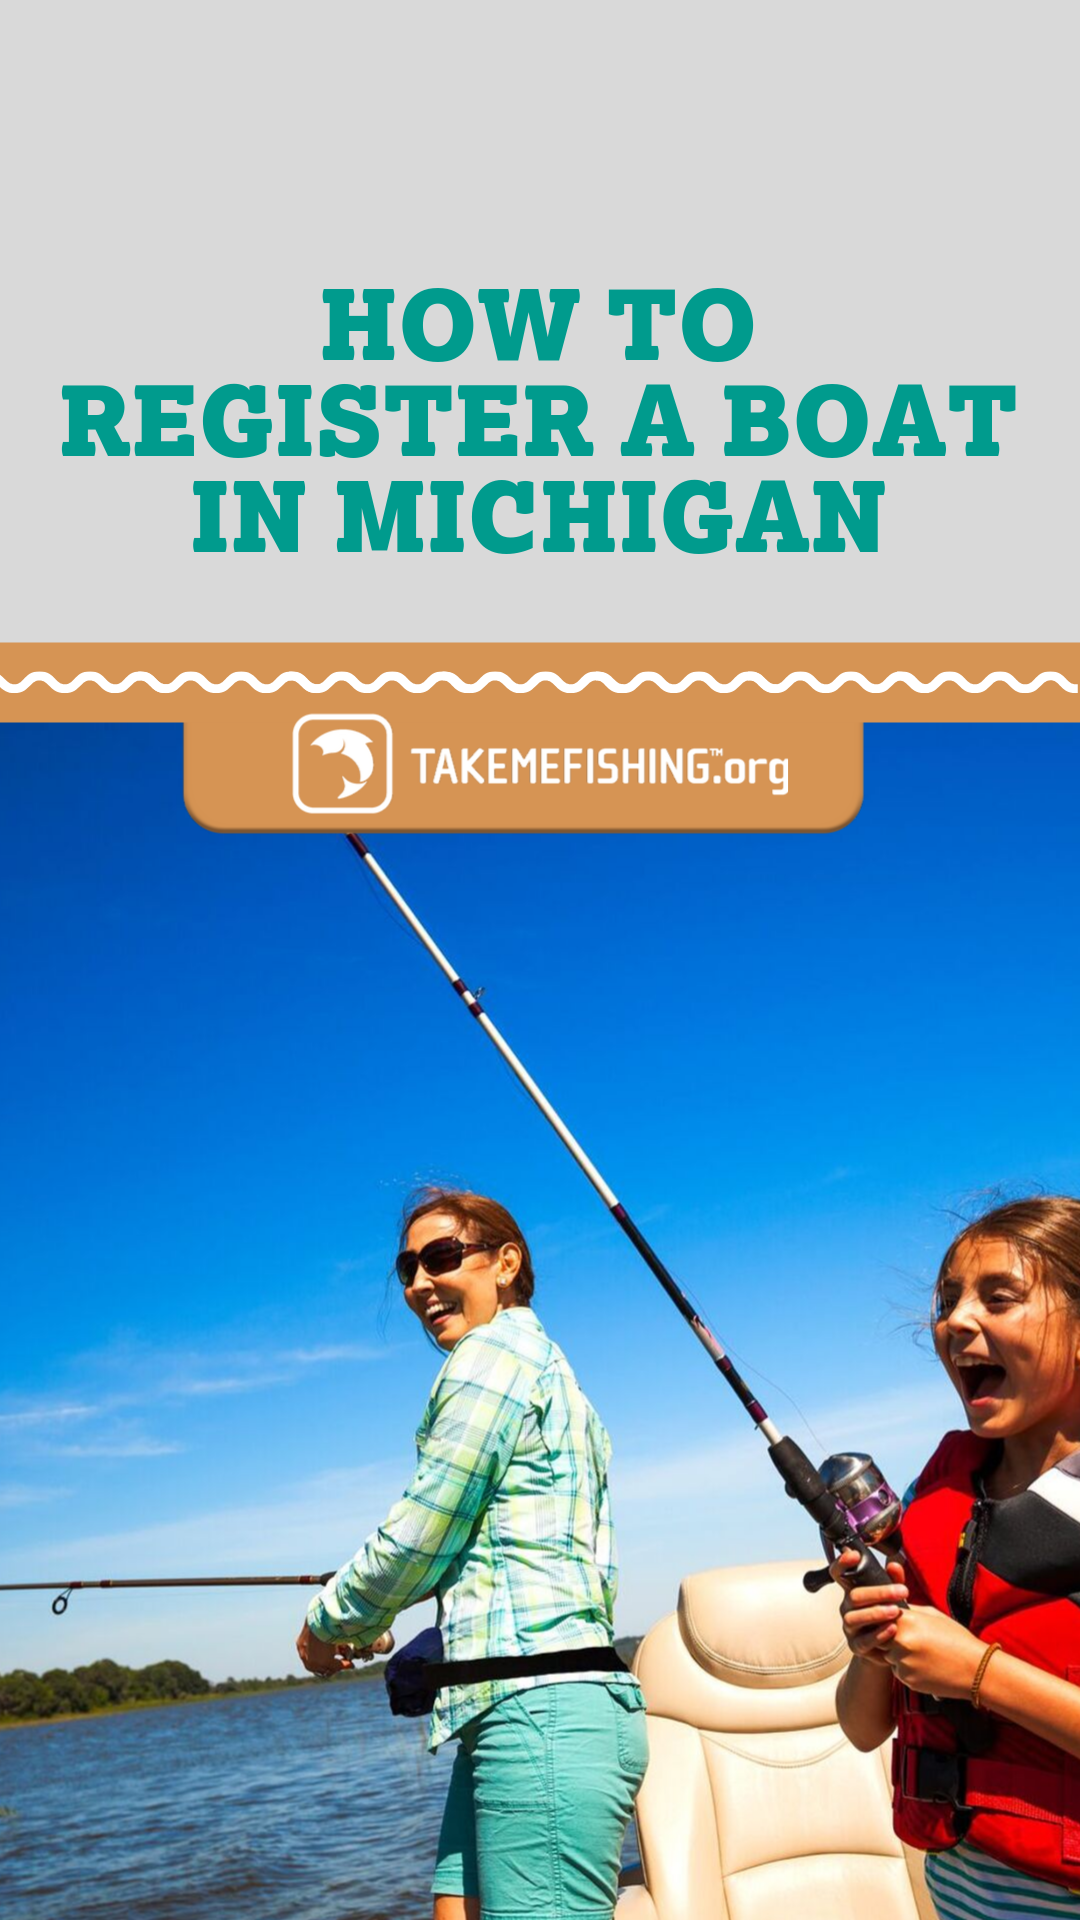 RegisterABoat in Michigan. Click here to learn more